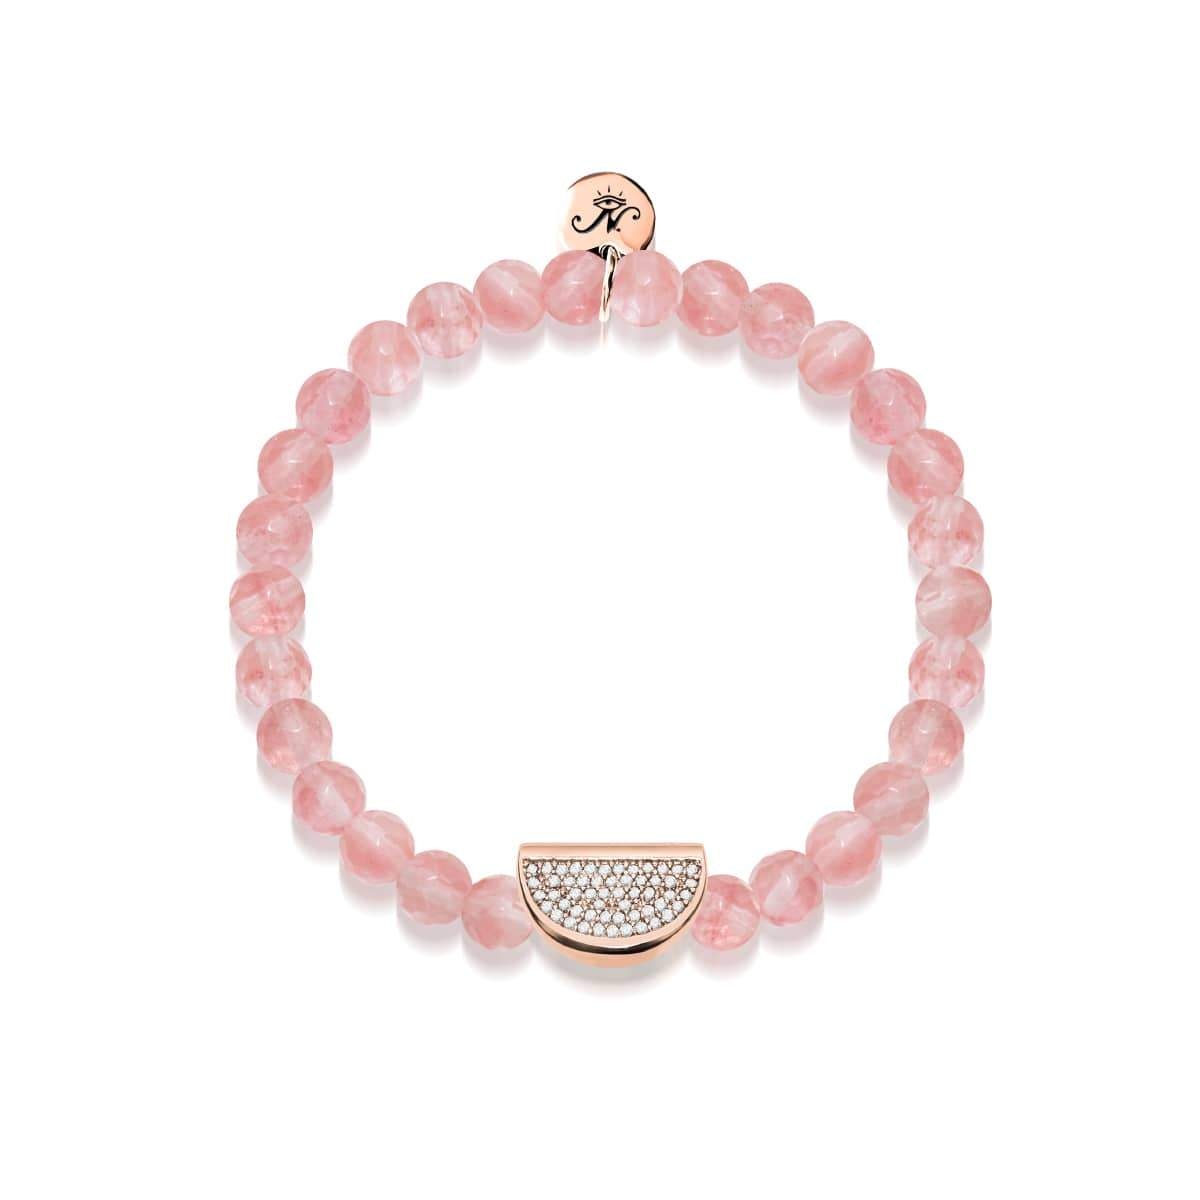 Juicy | 18k Rose Gold & Pink Apyrite | Crystal Melon